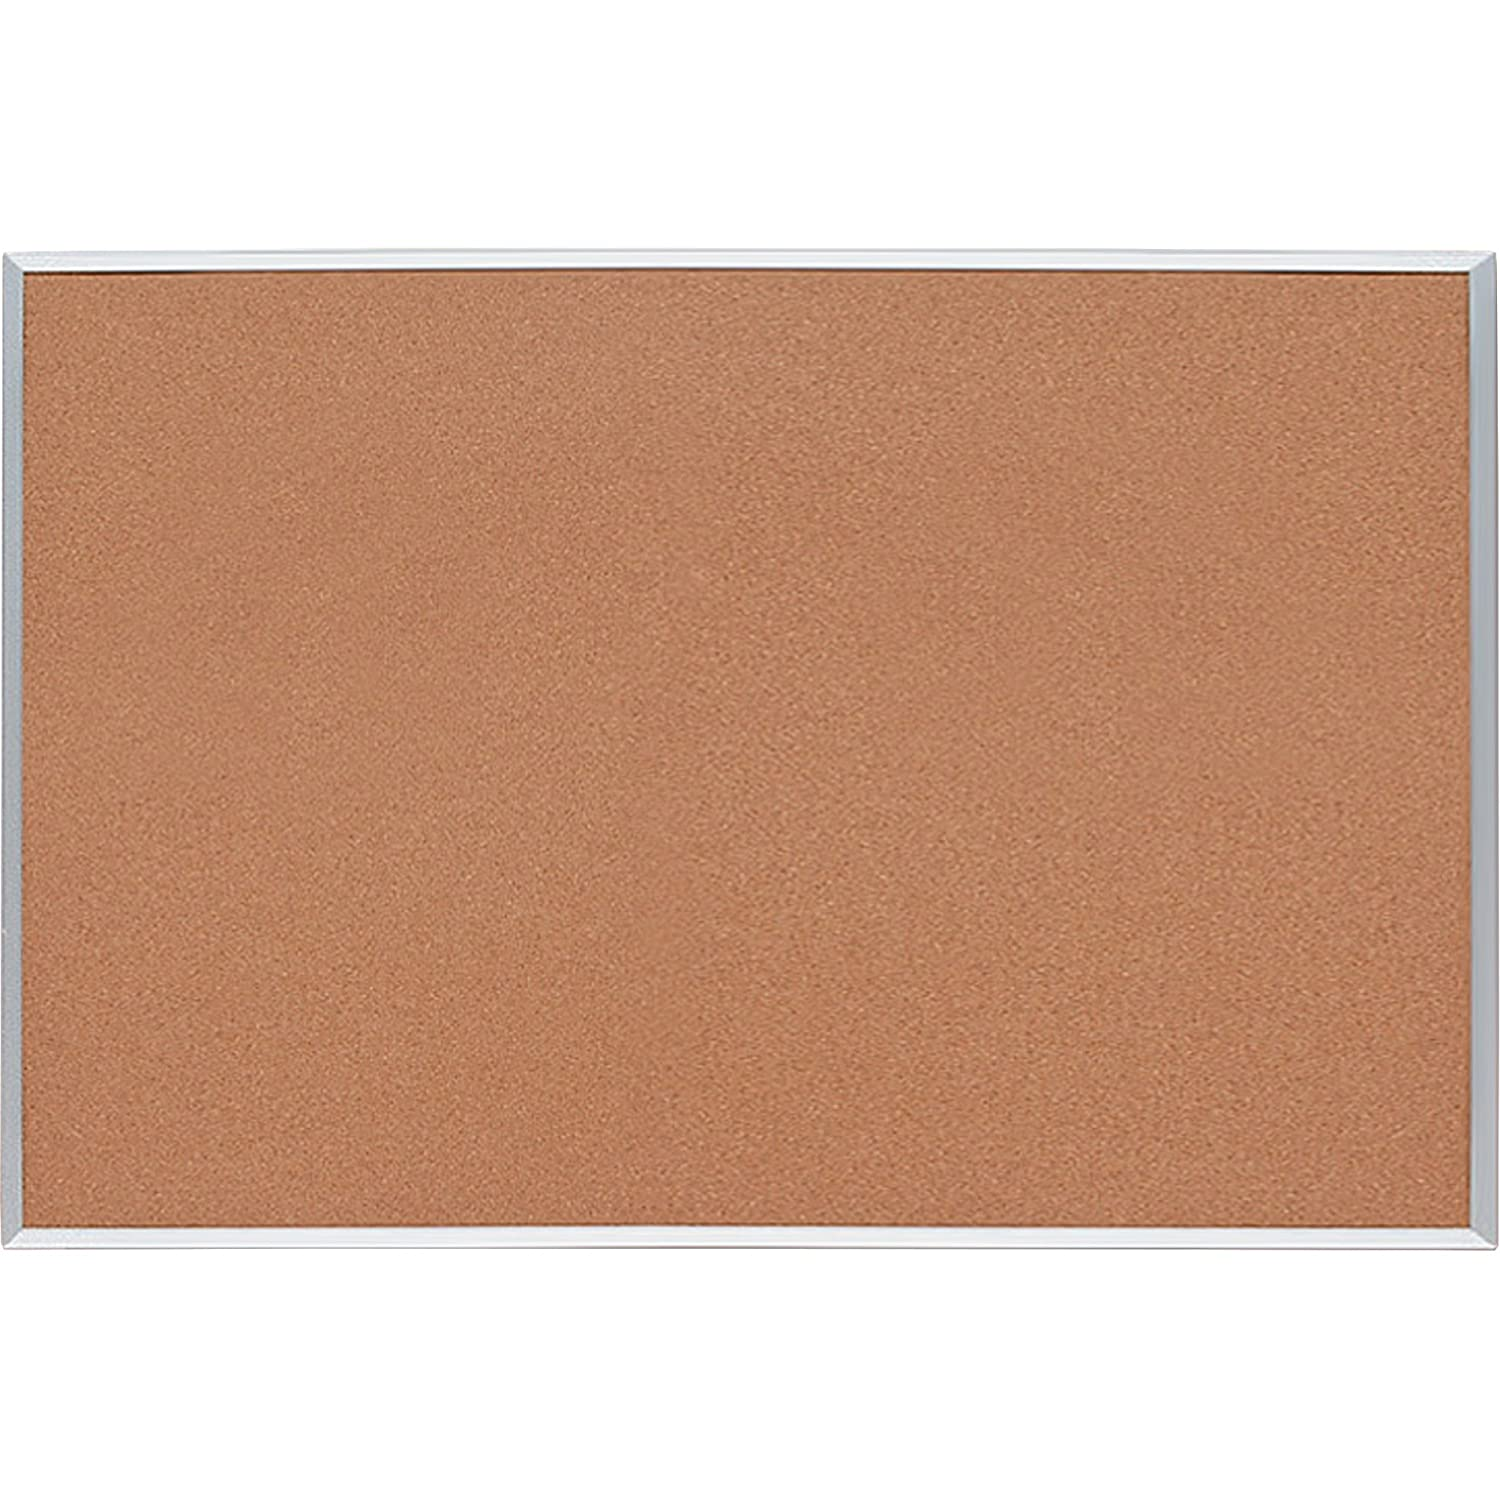 Sparco Cork Board, 1/2 Inches Thick, 4 x 3 Feet, Aluminum Frame (SPR19765) S.P. Richards Company